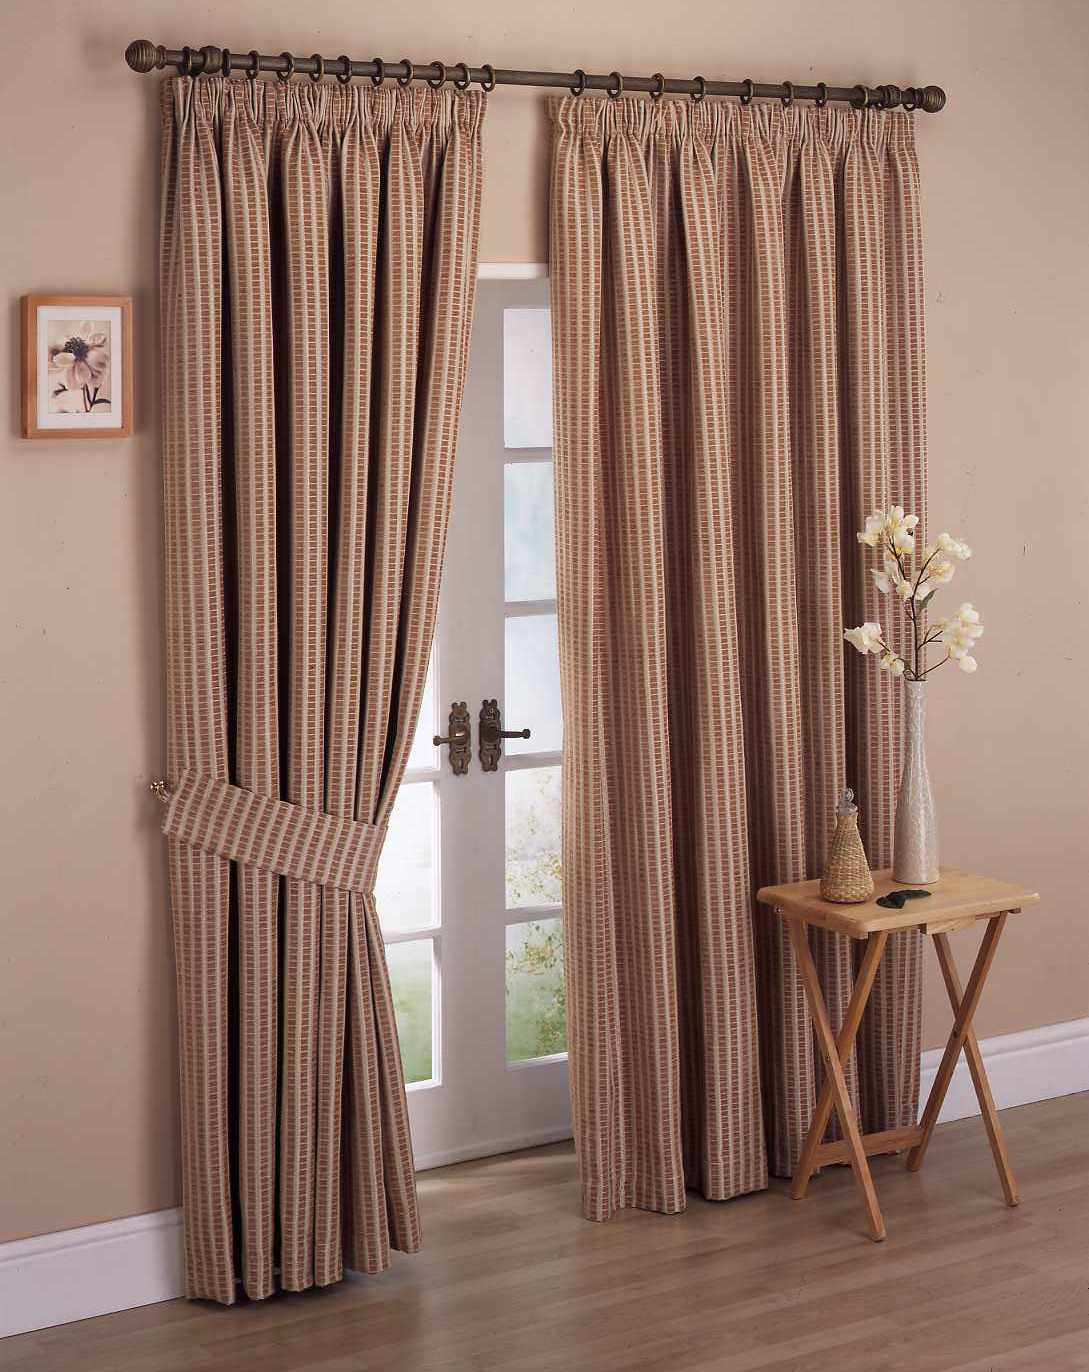 Top catalog of classic curtains designs 2013 Curtain designs for bedroom